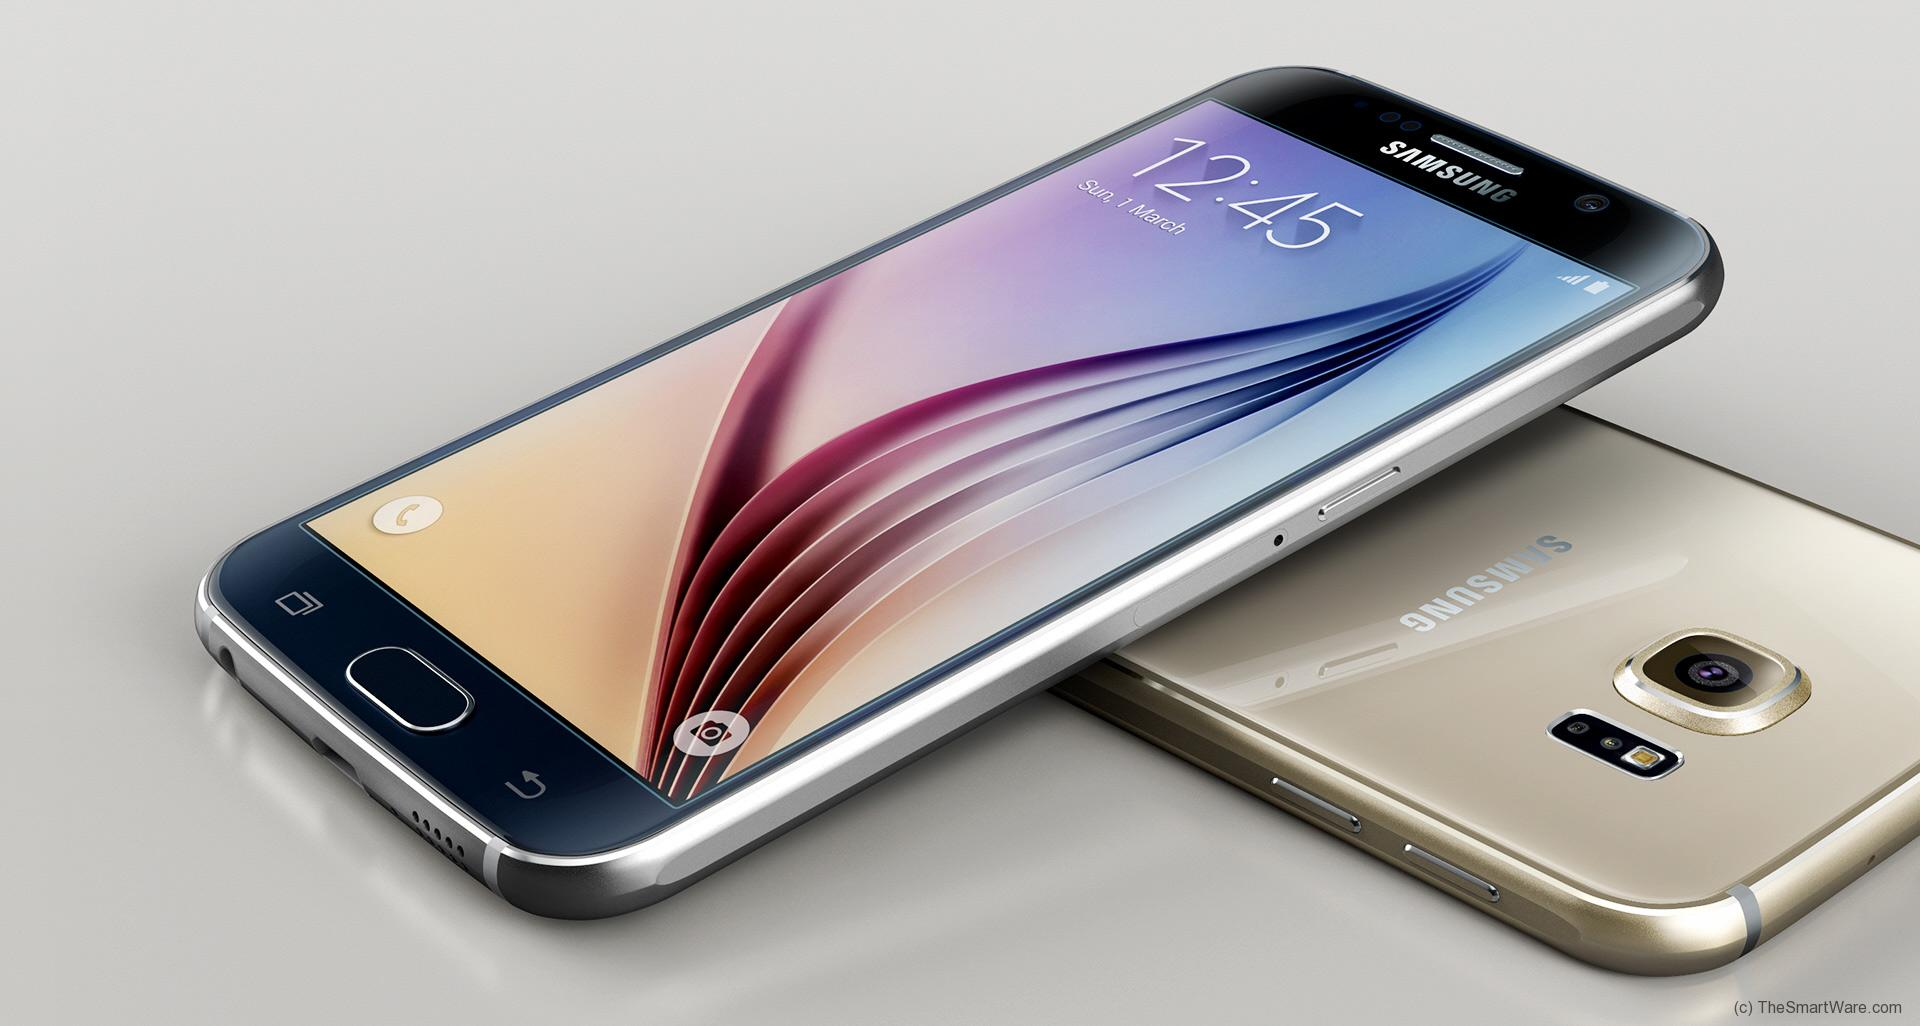 Samsung Galaxy S6 Android Smartphone Video Review by Android Appania